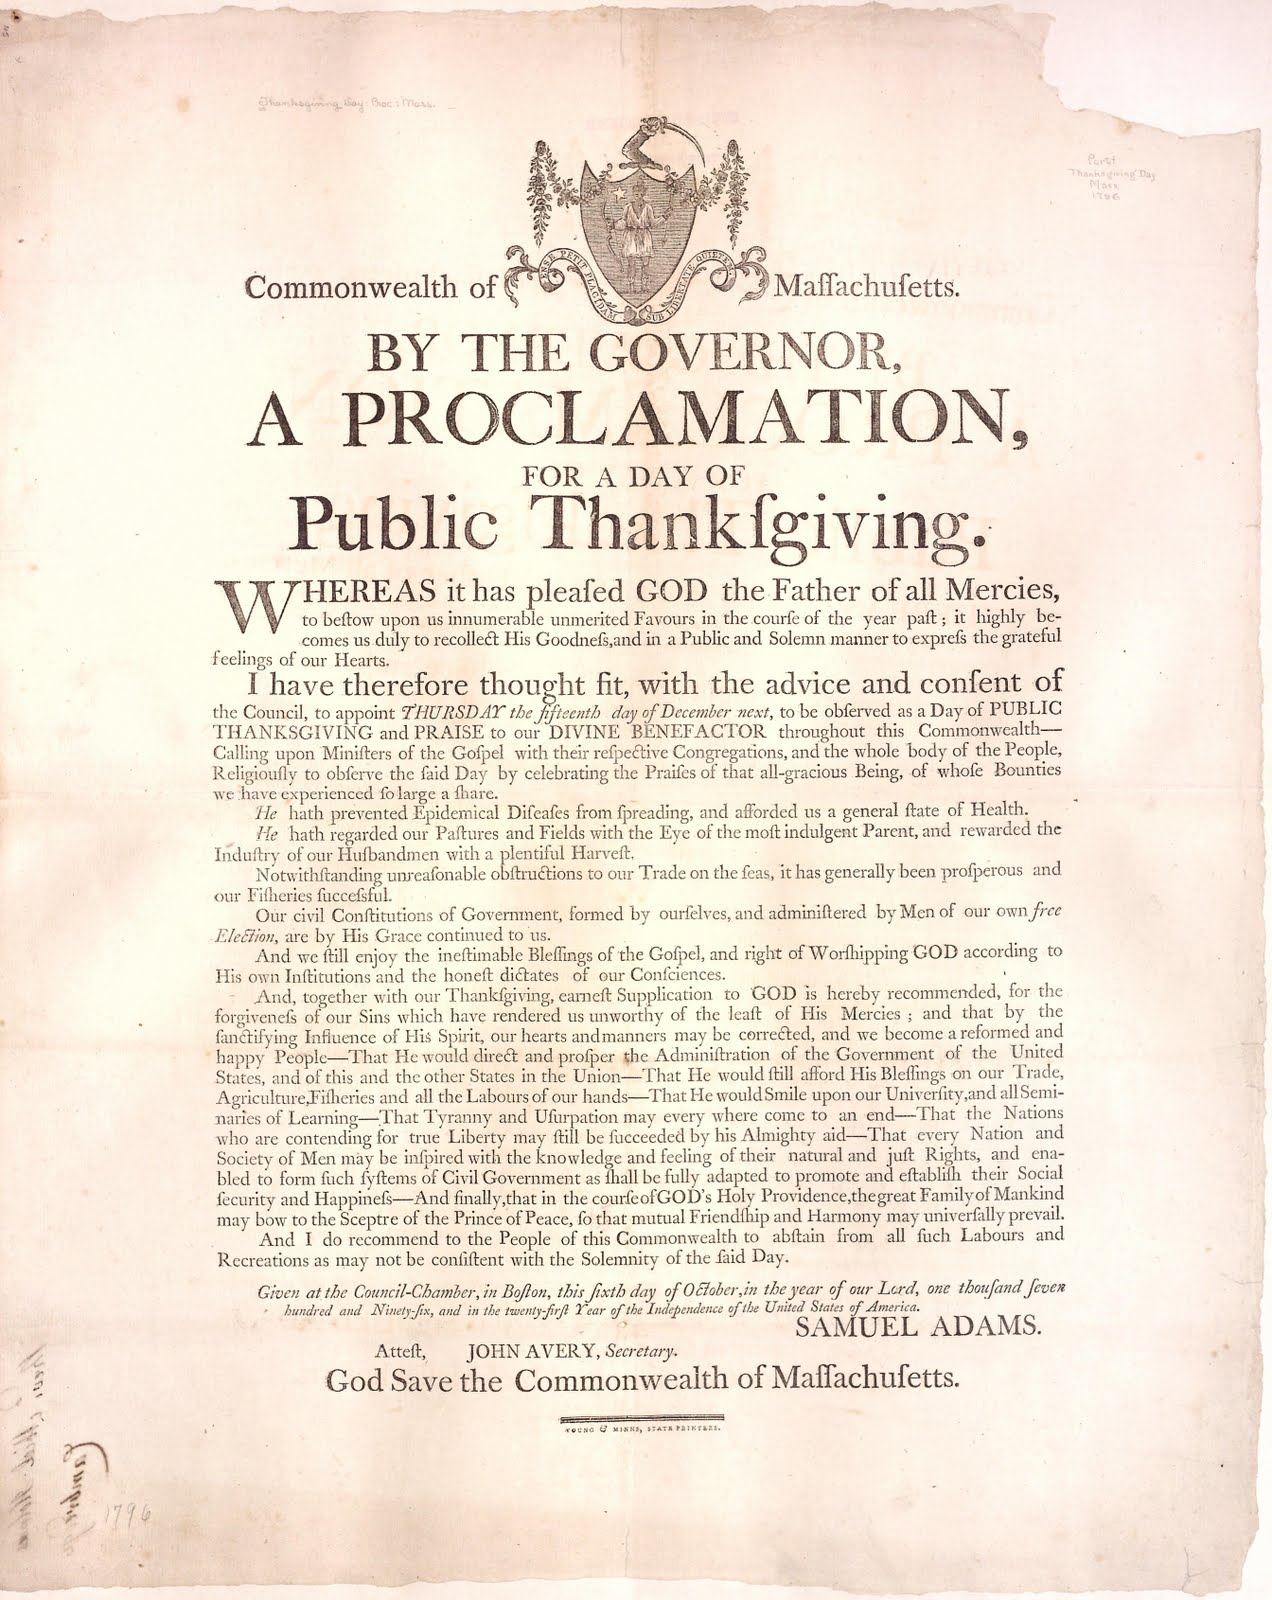 Thanksgiving Proclamation, Governor Samuel Adams, Massachusetts, 1796.